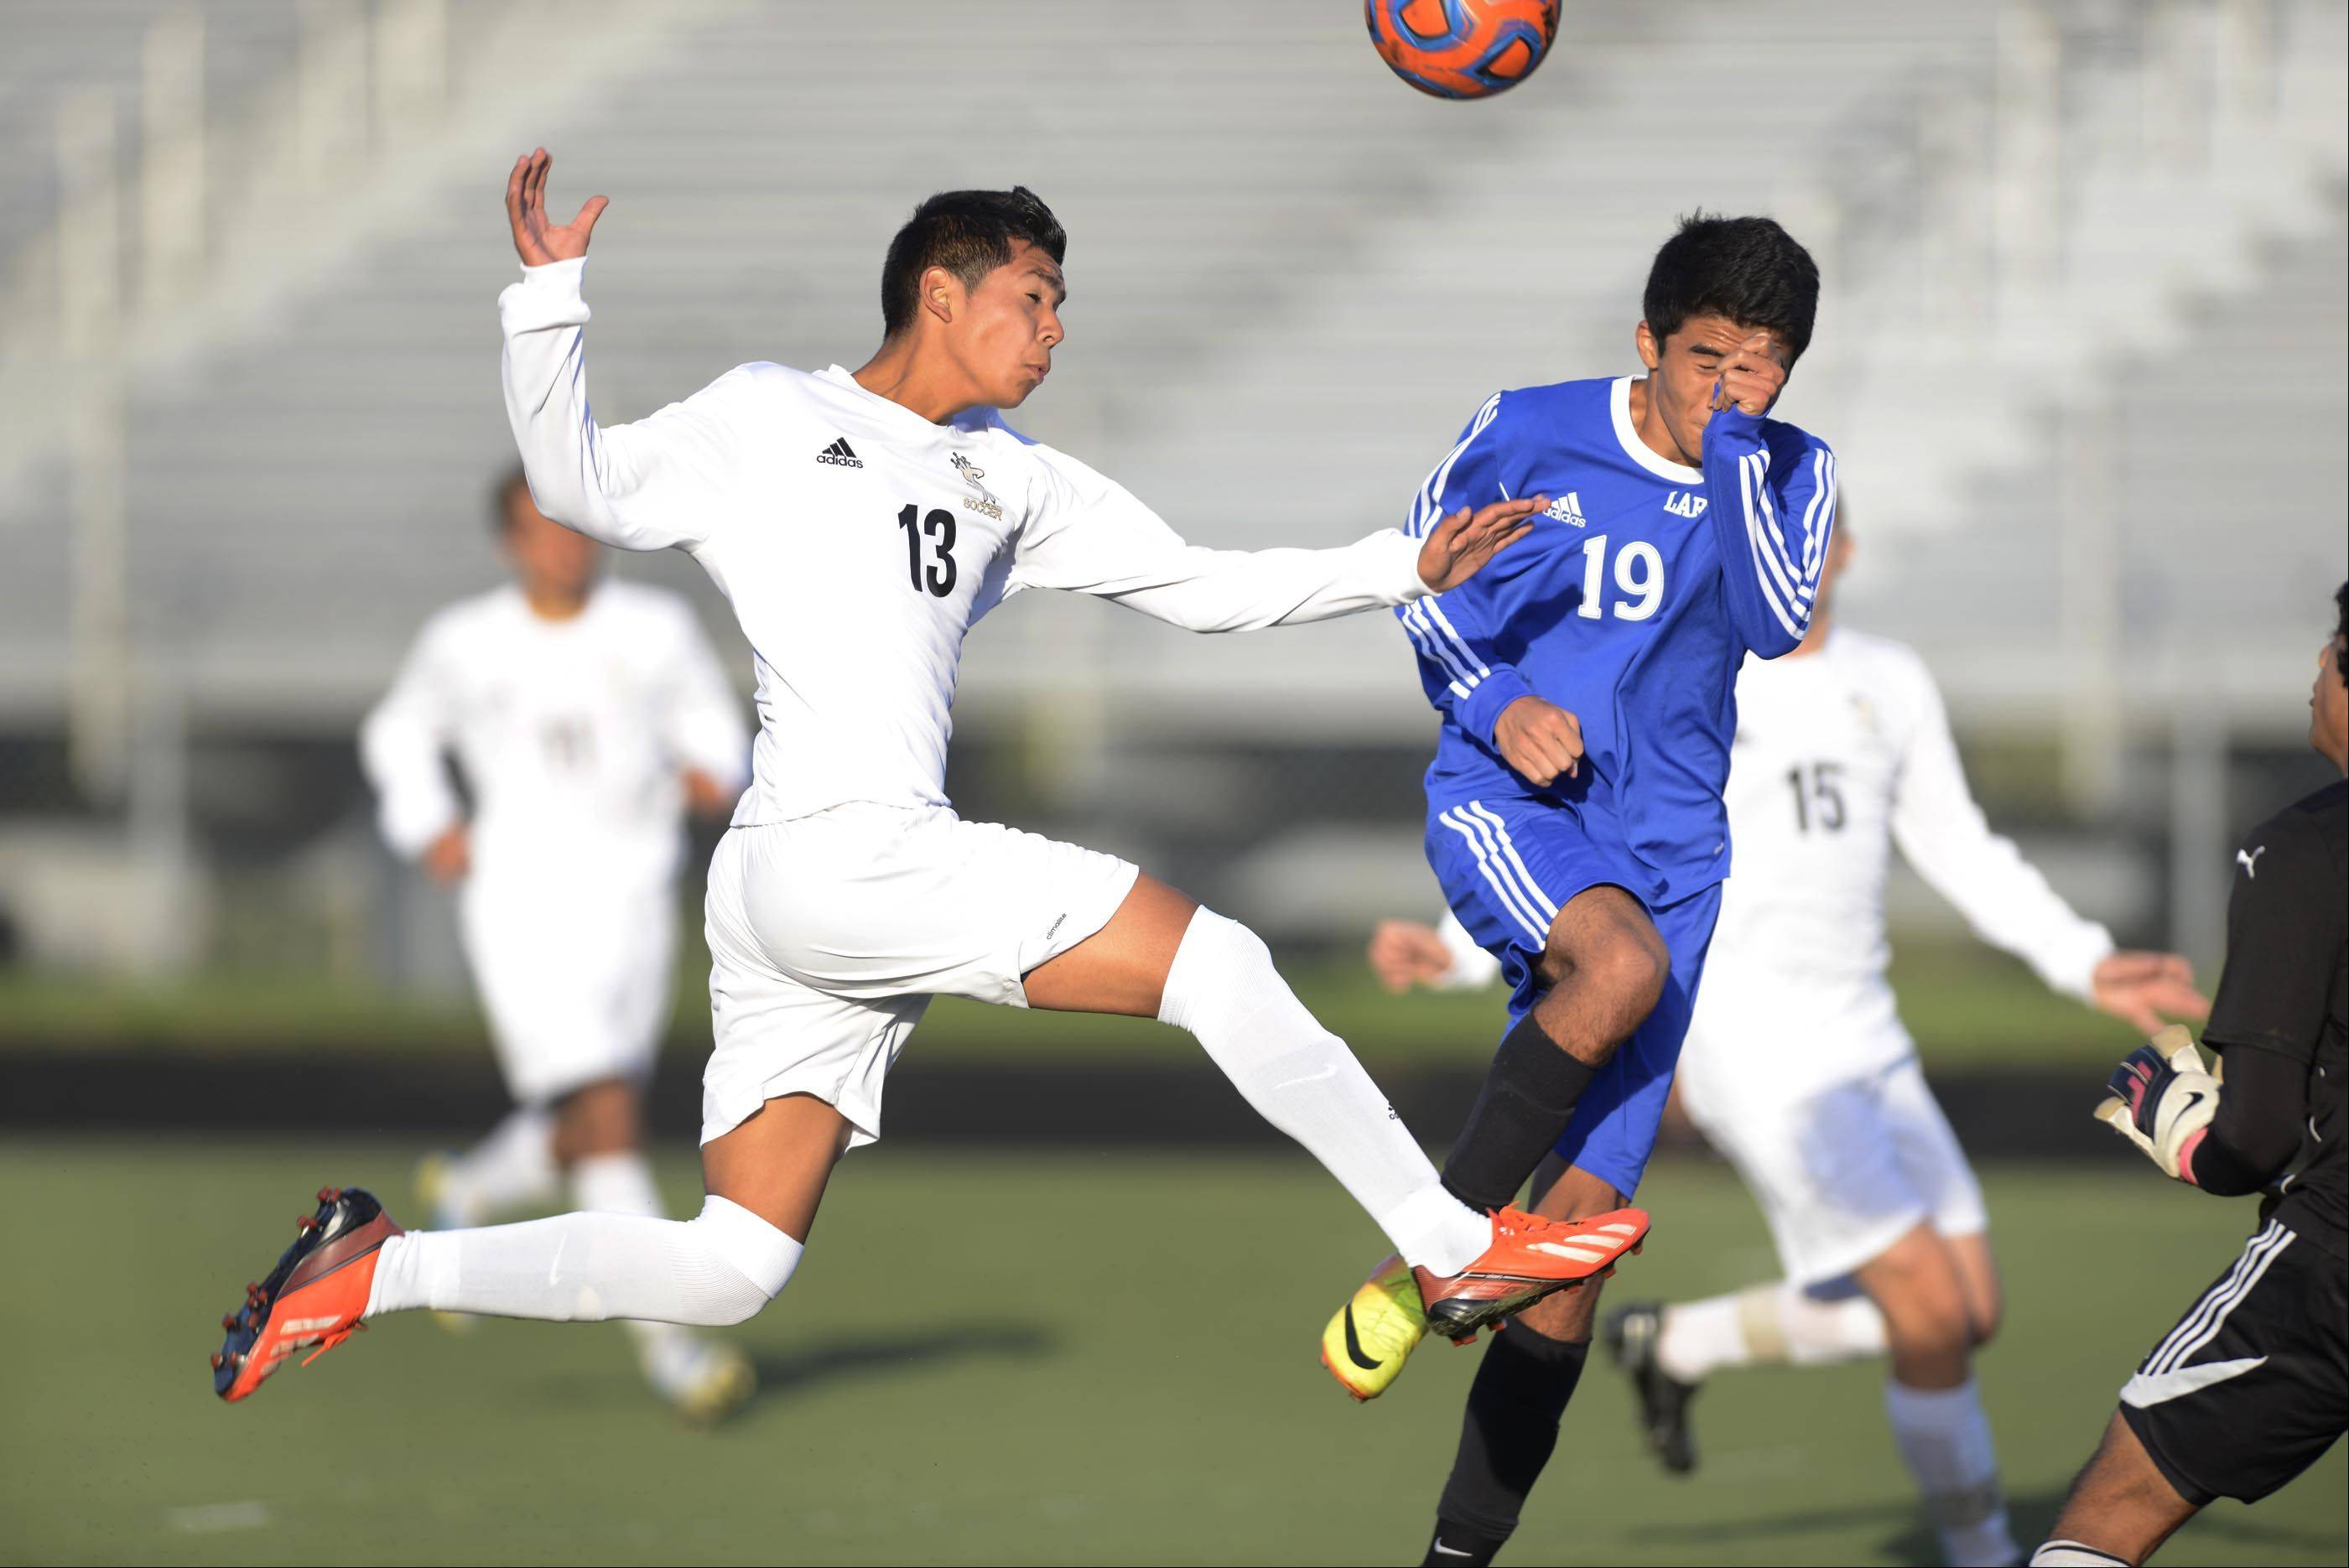 Streamwood�s Donnie Sosa and Larkin�s Diego Ramirez, right, compete for a corner kick Monday in Streamwood.